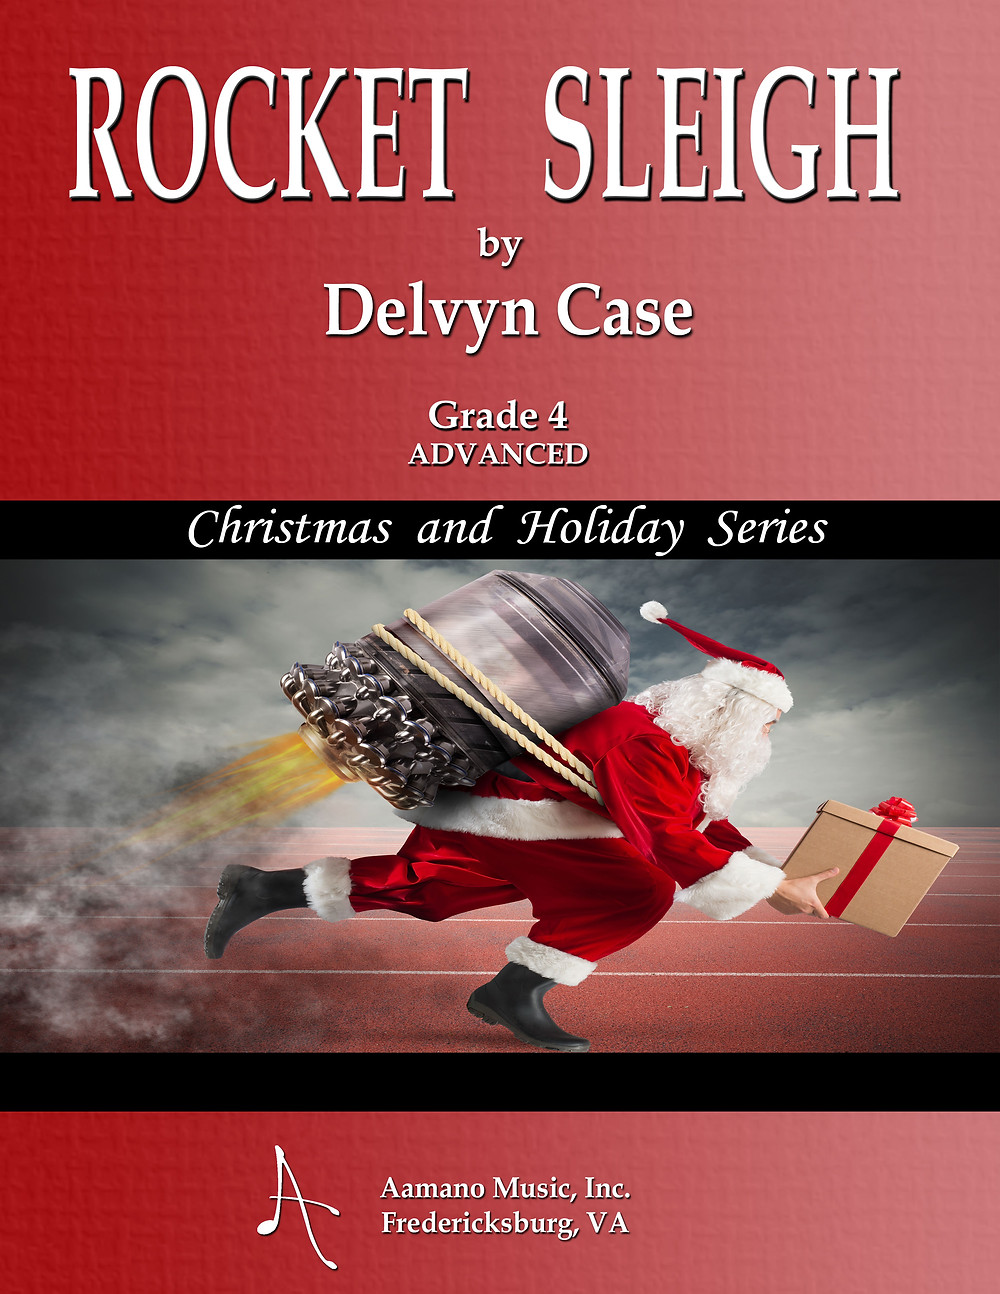 Rocket Sleigh by Delvyn Case for Concert band